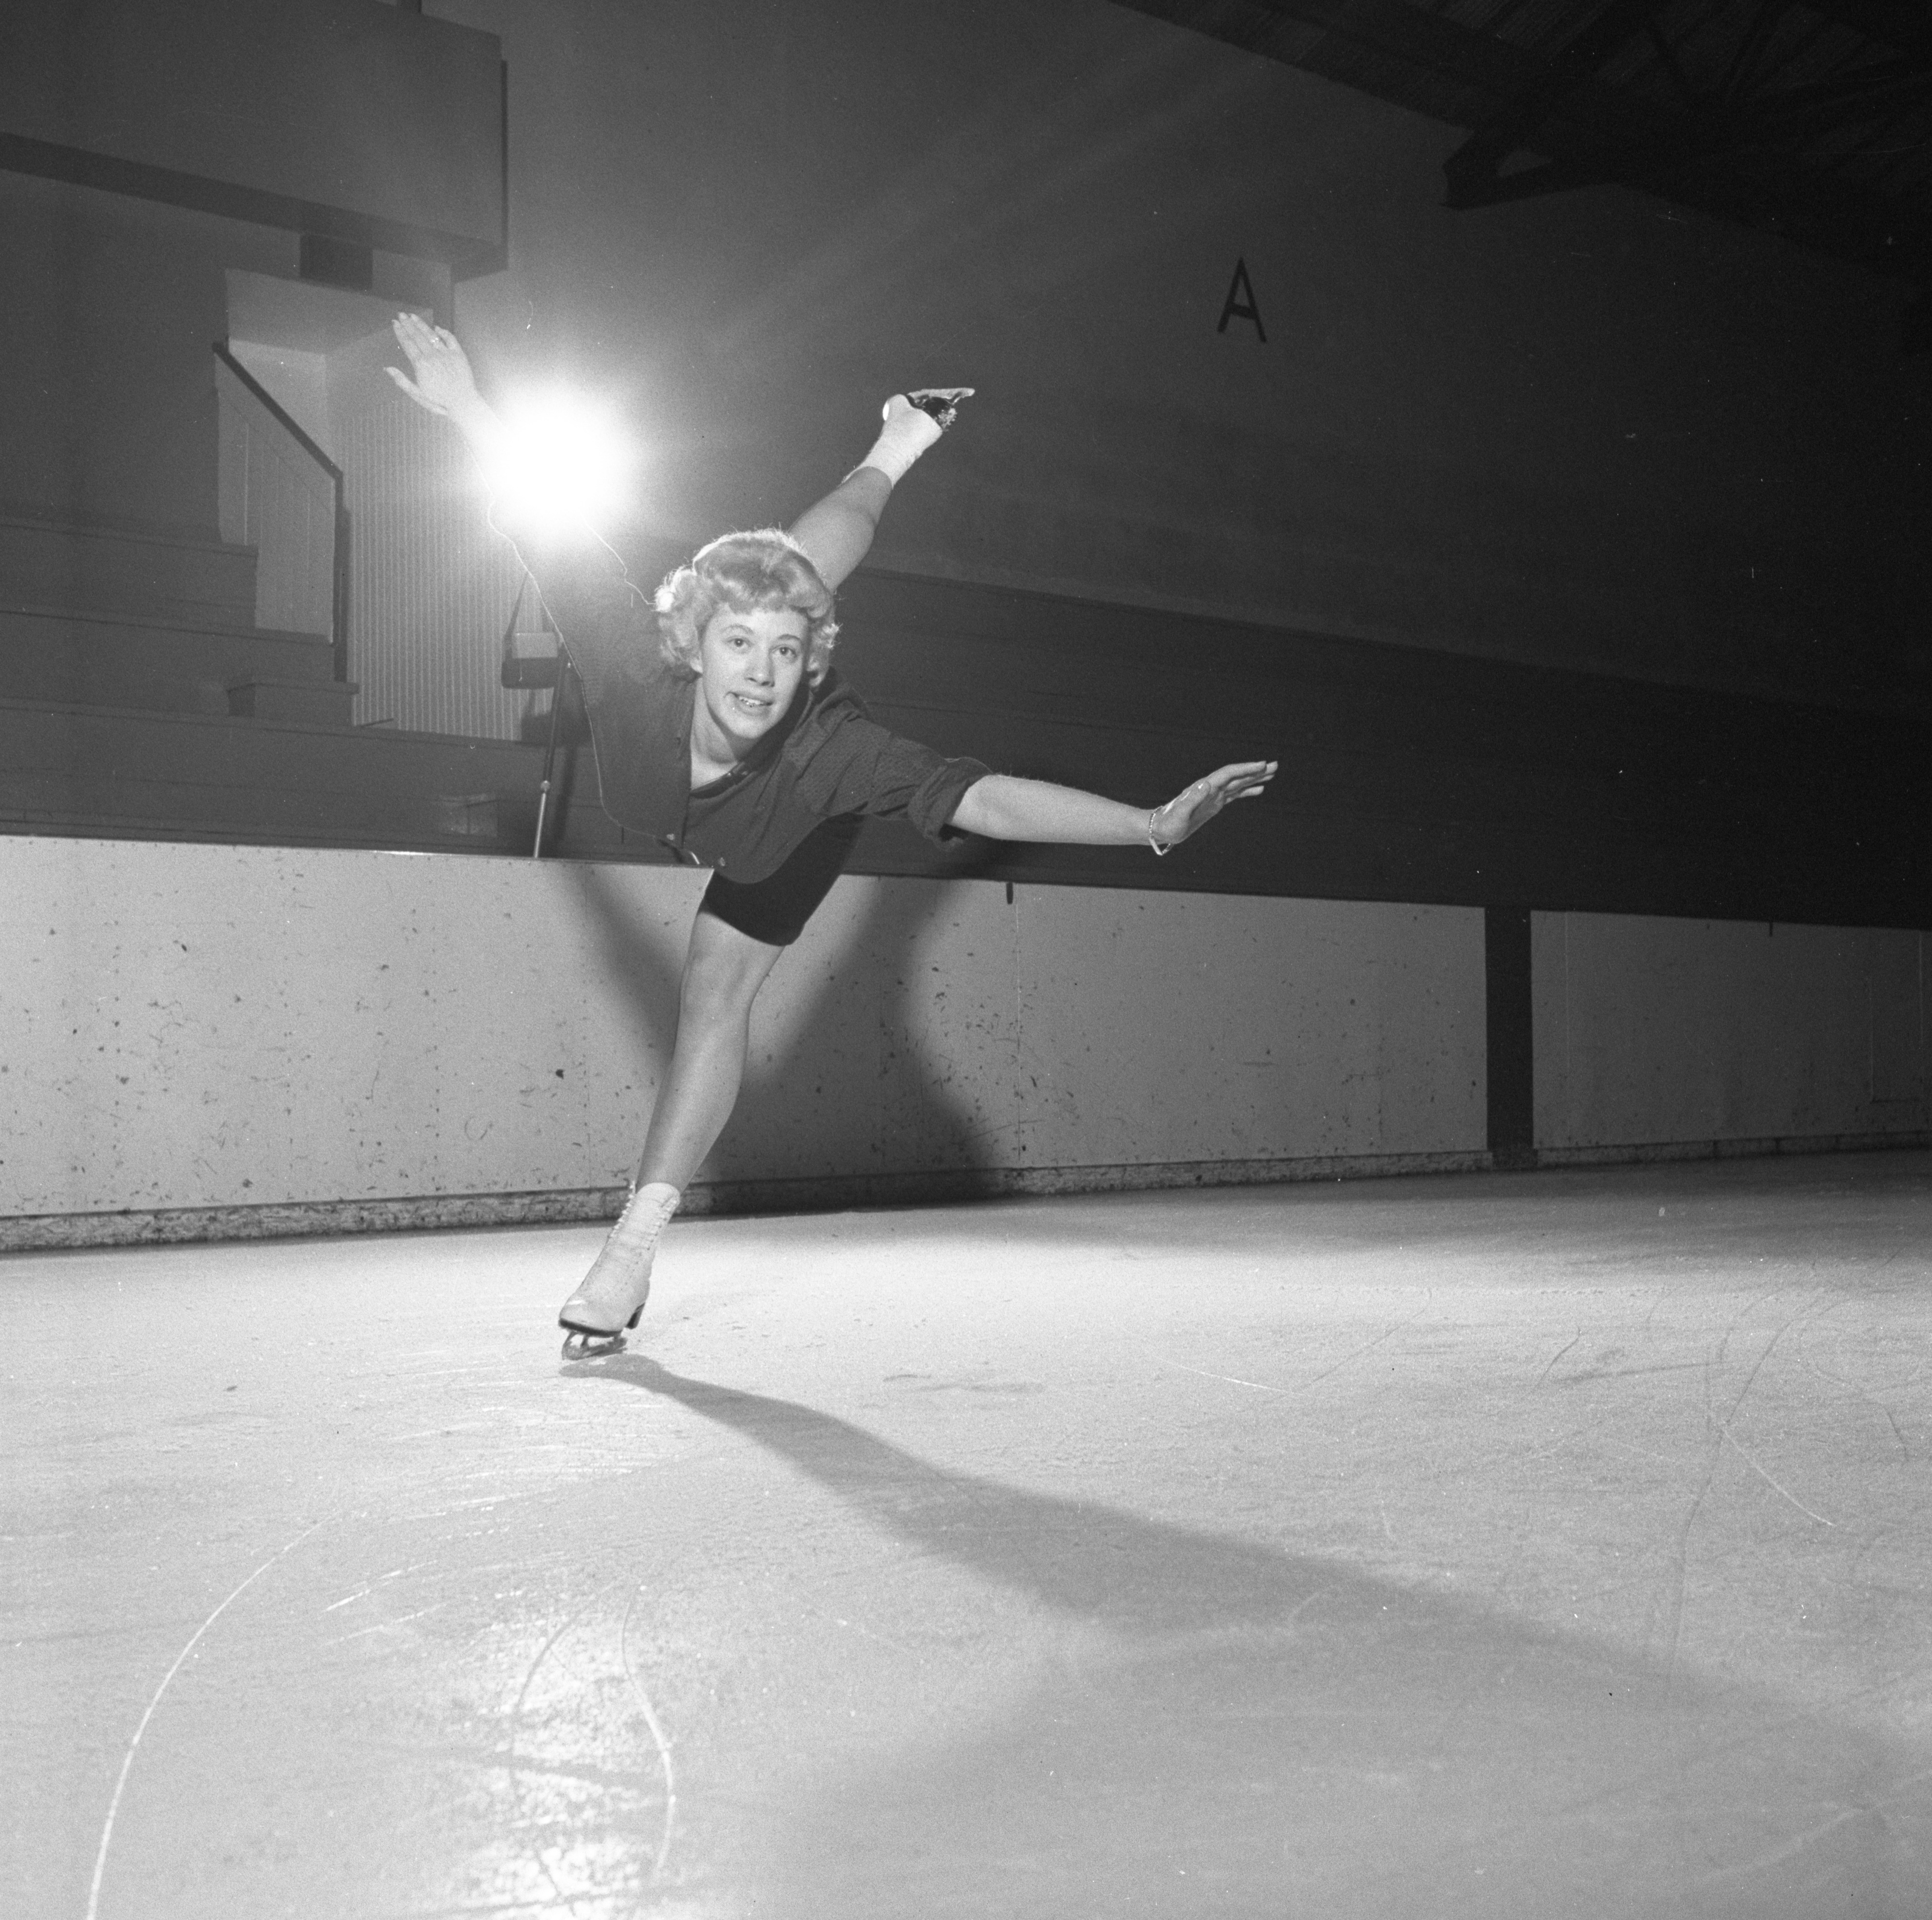 Sally Dilno Rehearses For Ann Arbor Figure Skating Club 'Melody On Ice' Show, March 1959 image